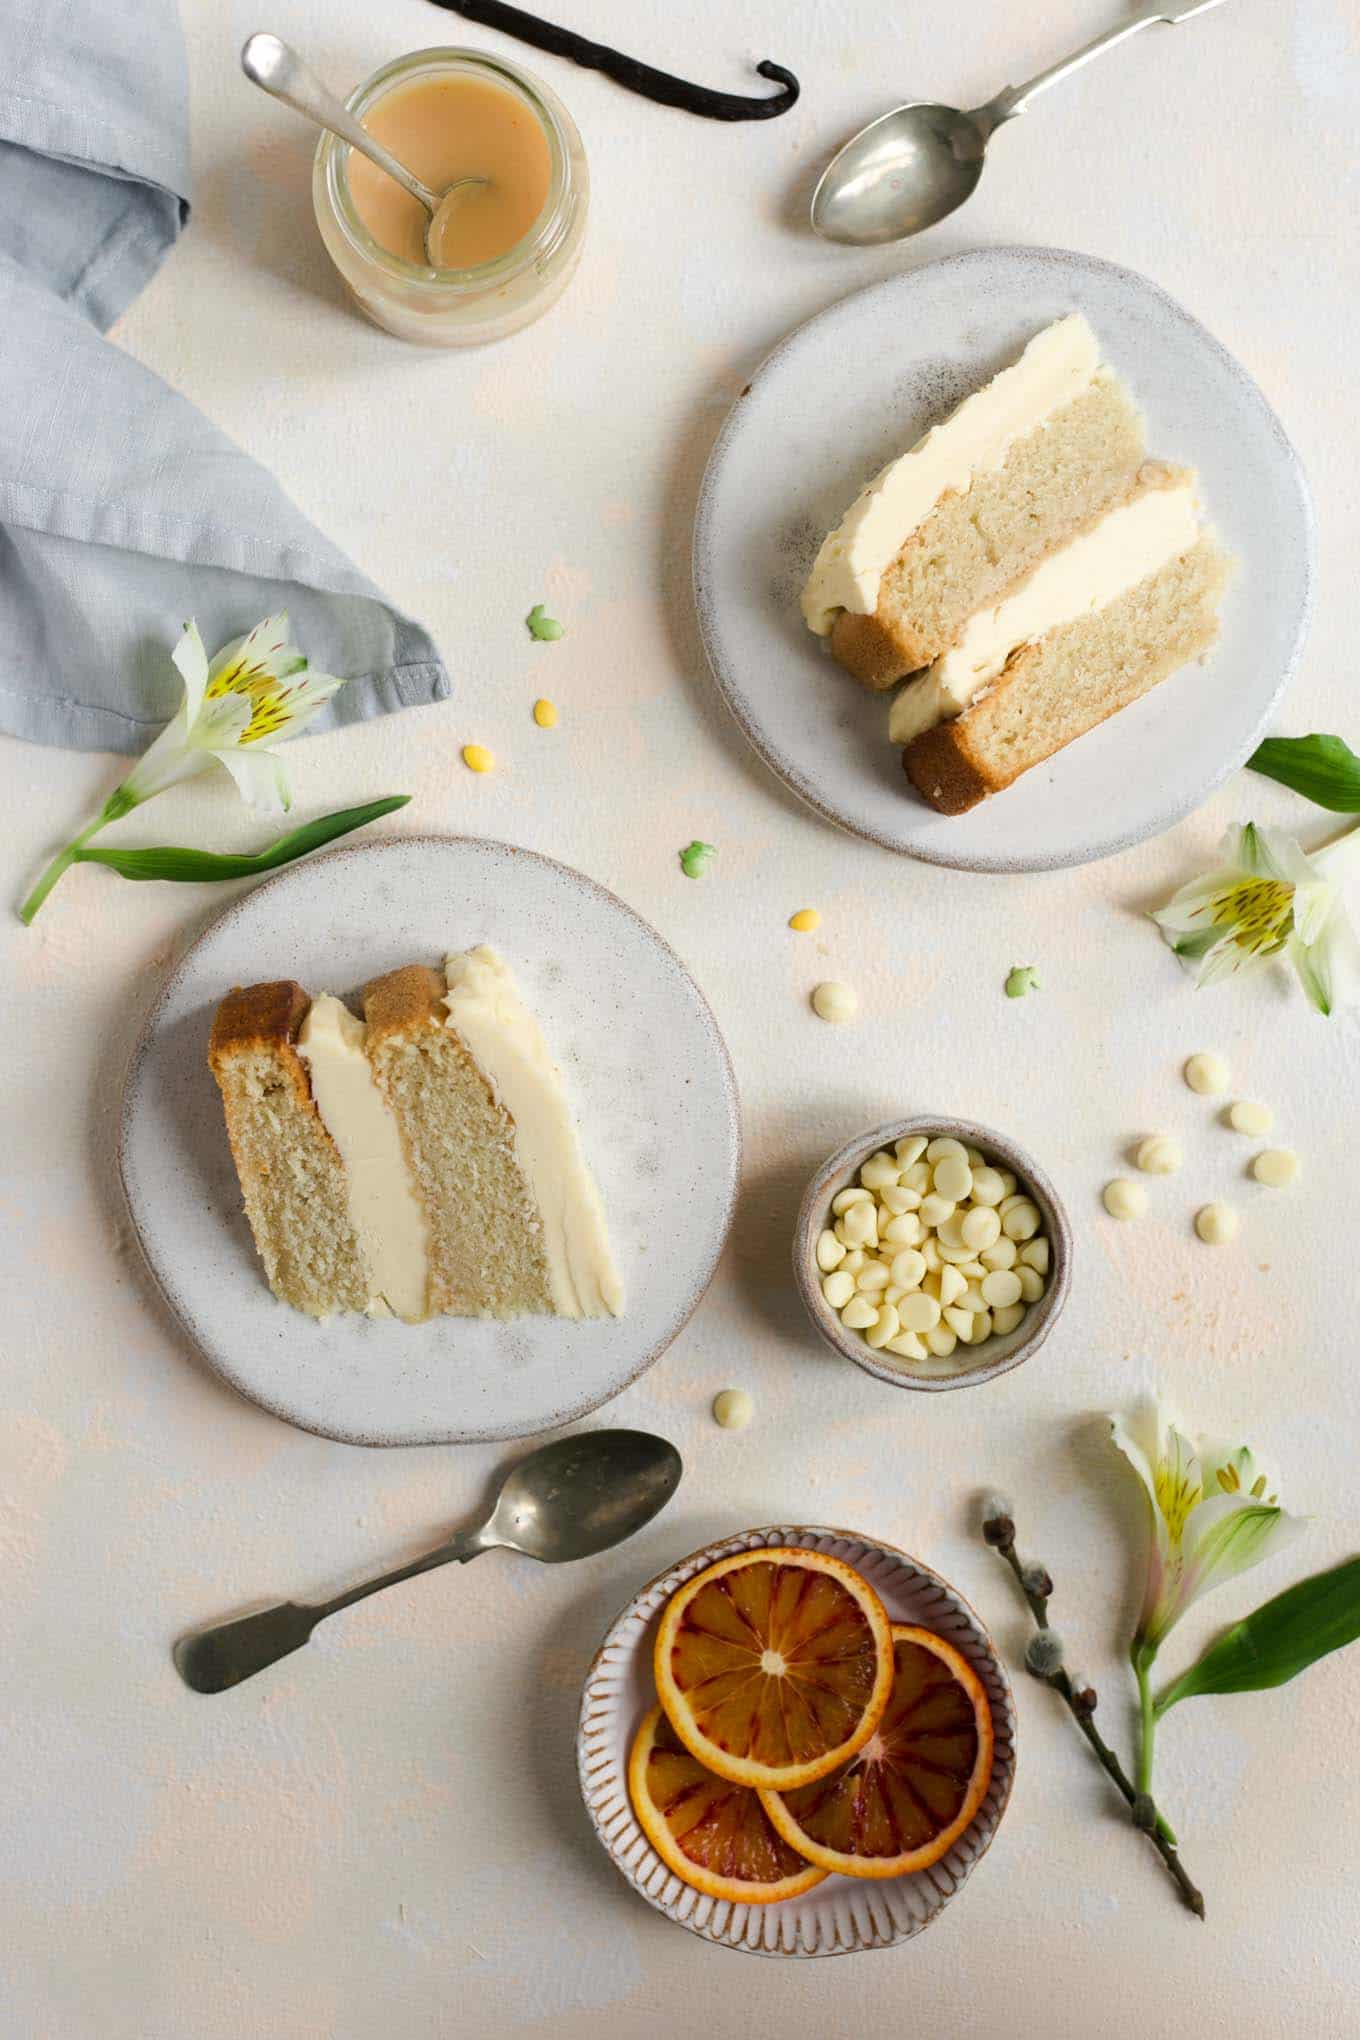 Delicious vegan white chocolate cake with blood orange curd #vegan #cake #dairyfreecake | via @annabanana.co